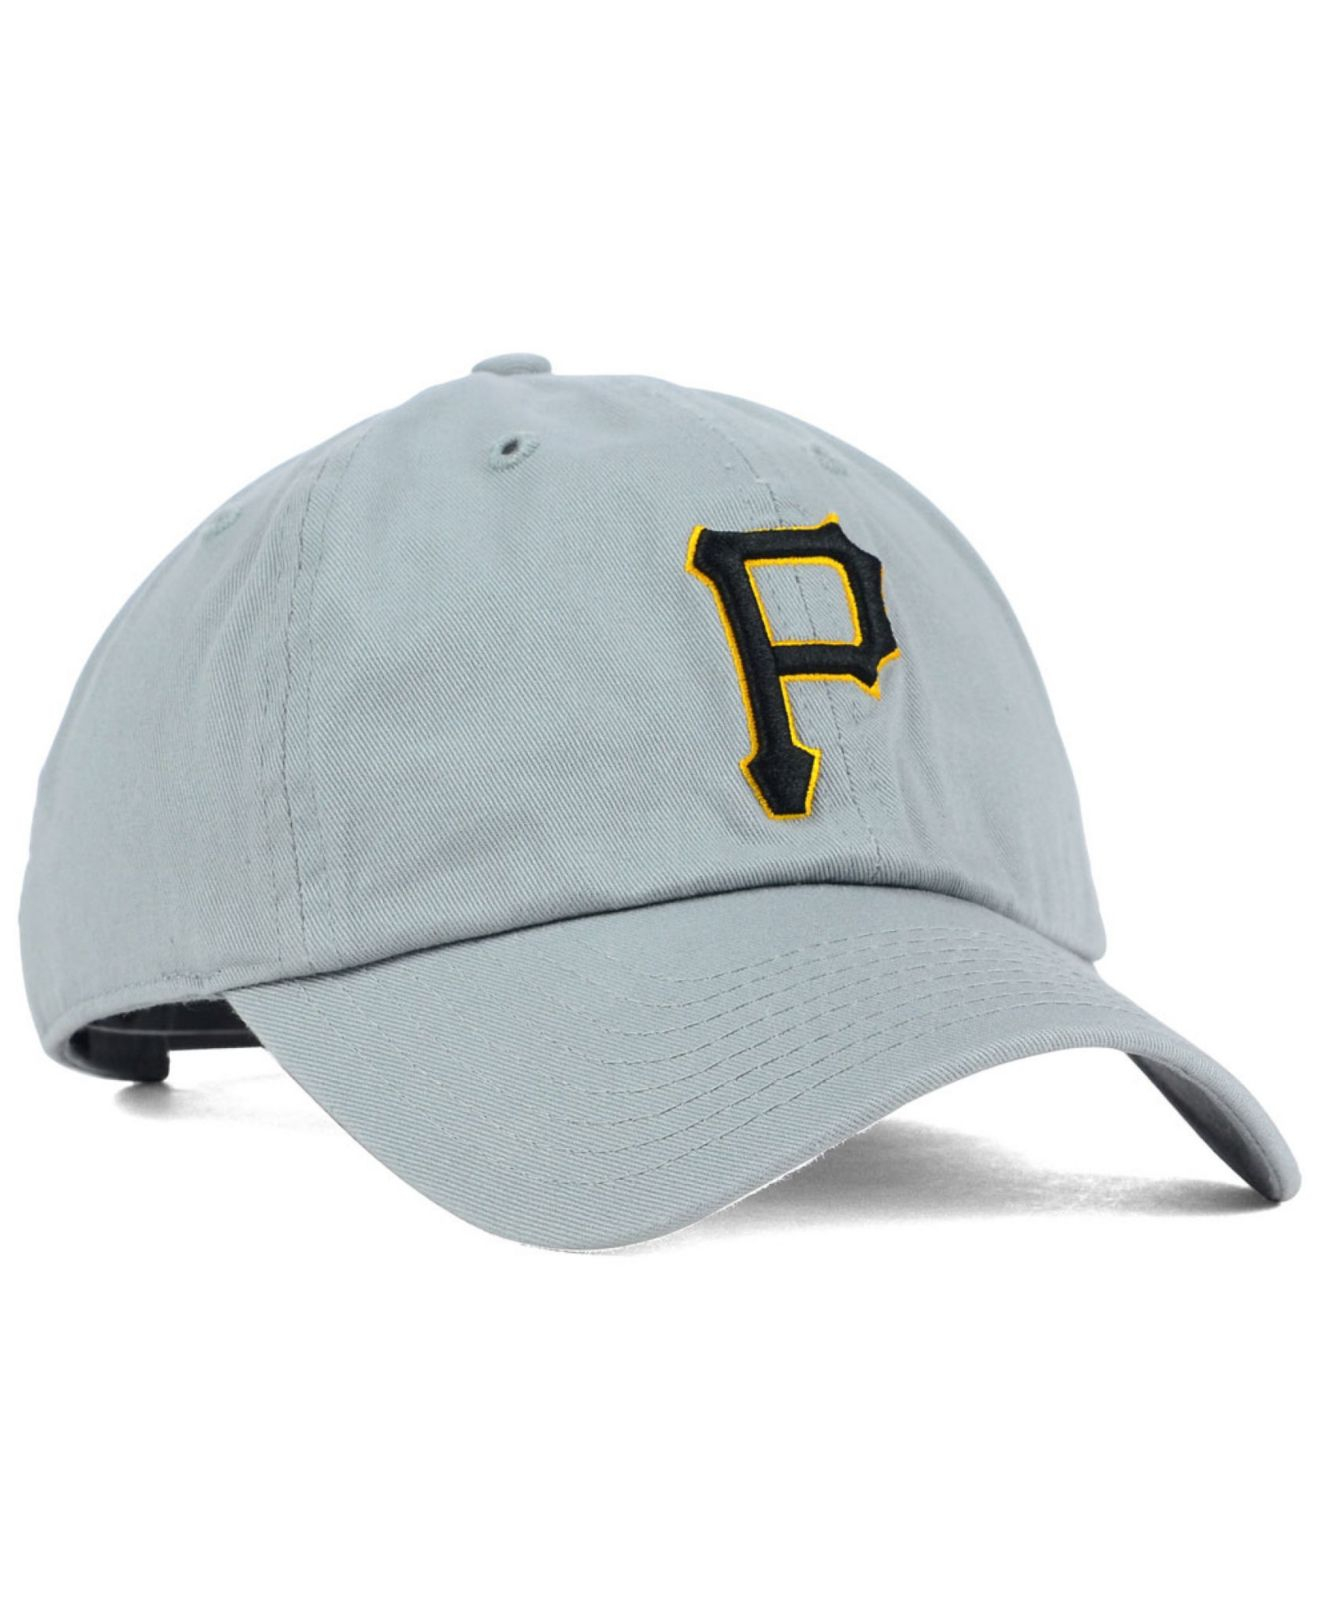 7f01f69a8fe ... clean up cap 98e16 7da44  free shipping lyst 47 brand pittsburgh  pirates adjustable cap in gray for men 51670 8feb4